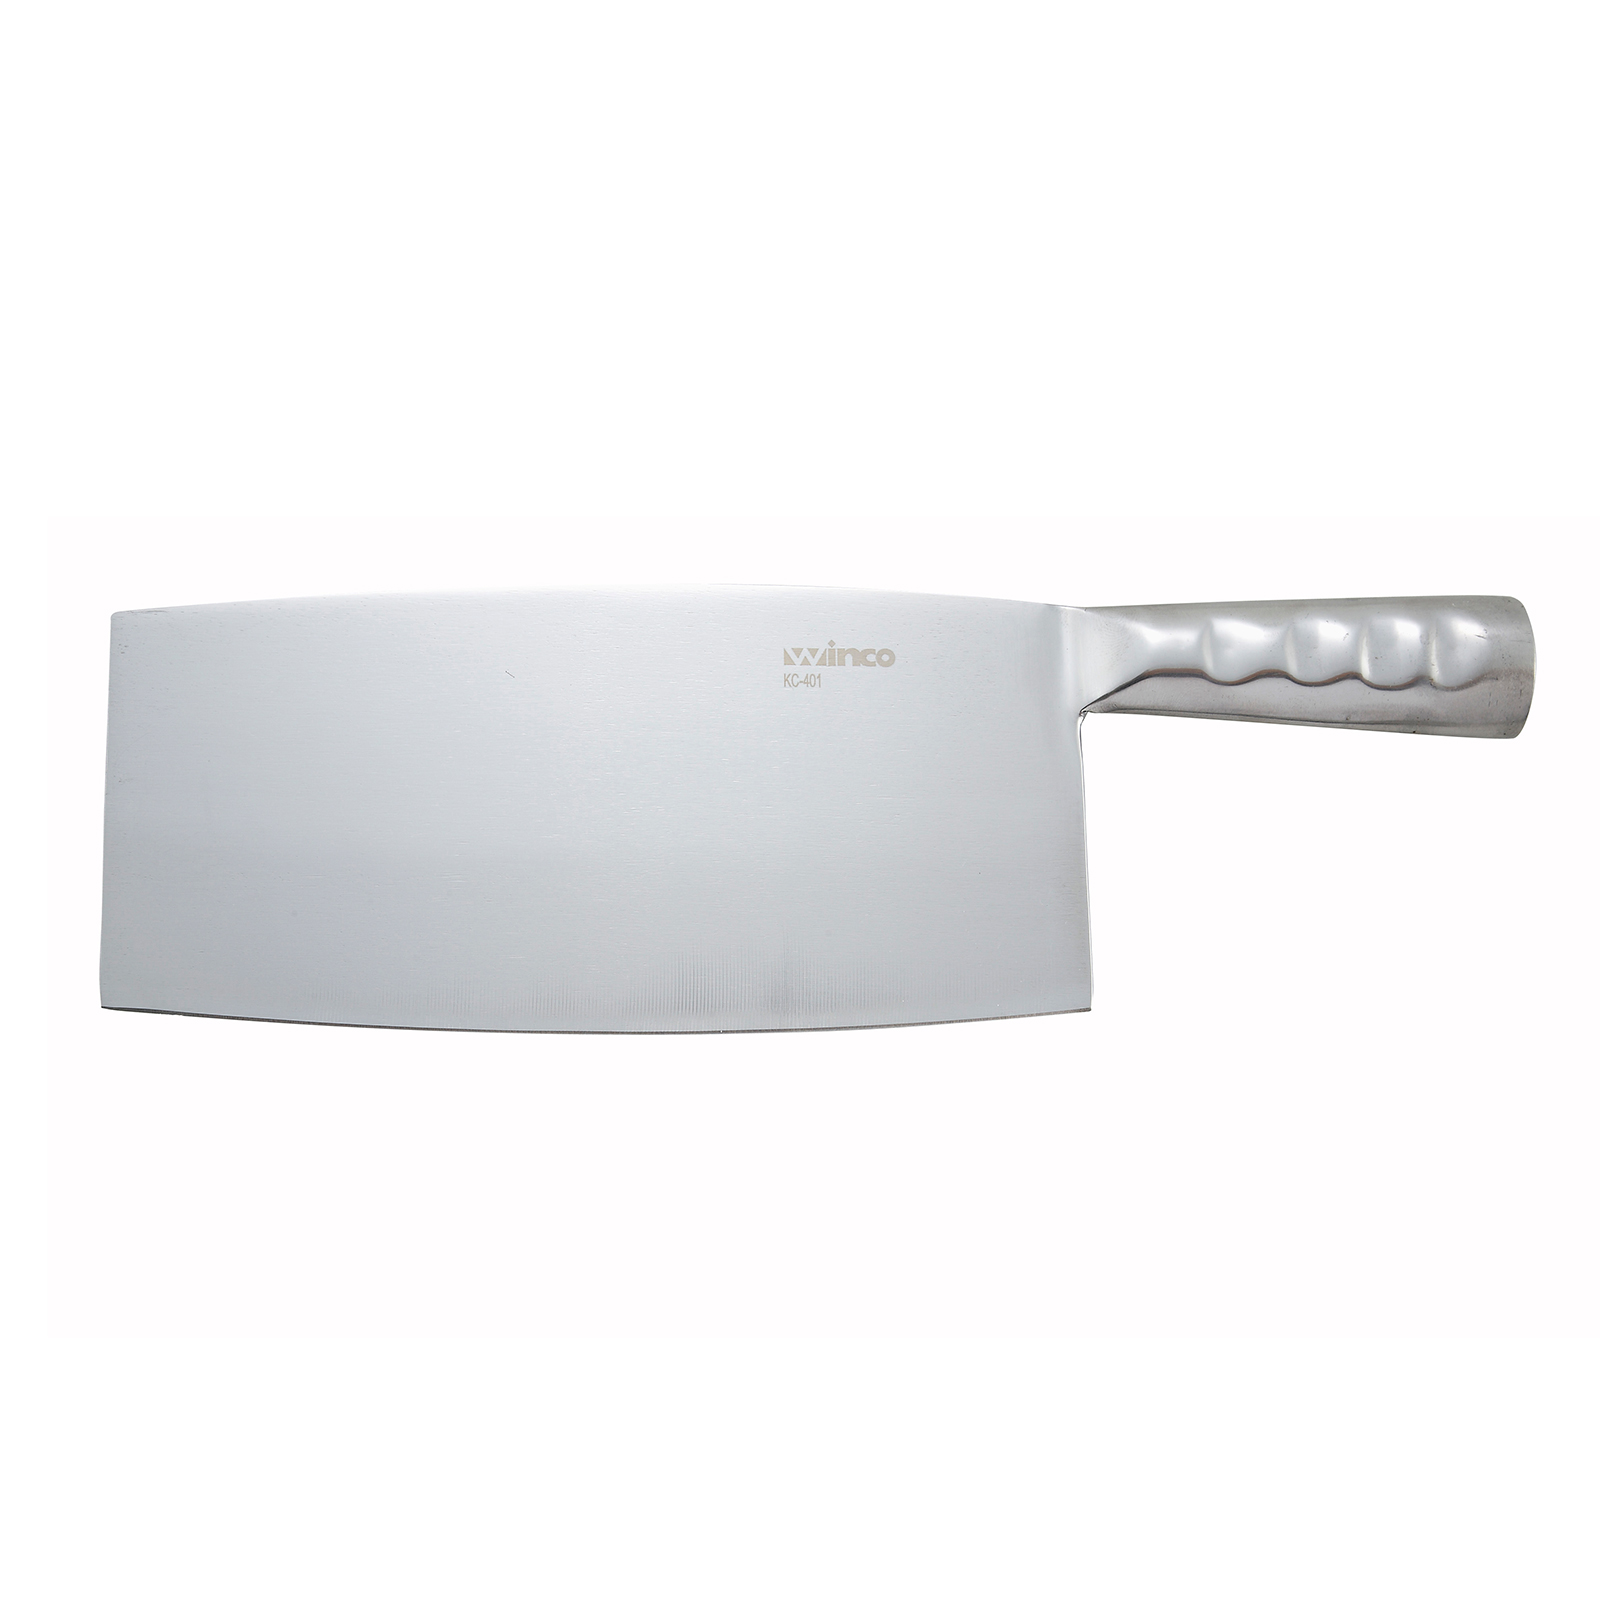 Winco KC-401 knife, cleaver